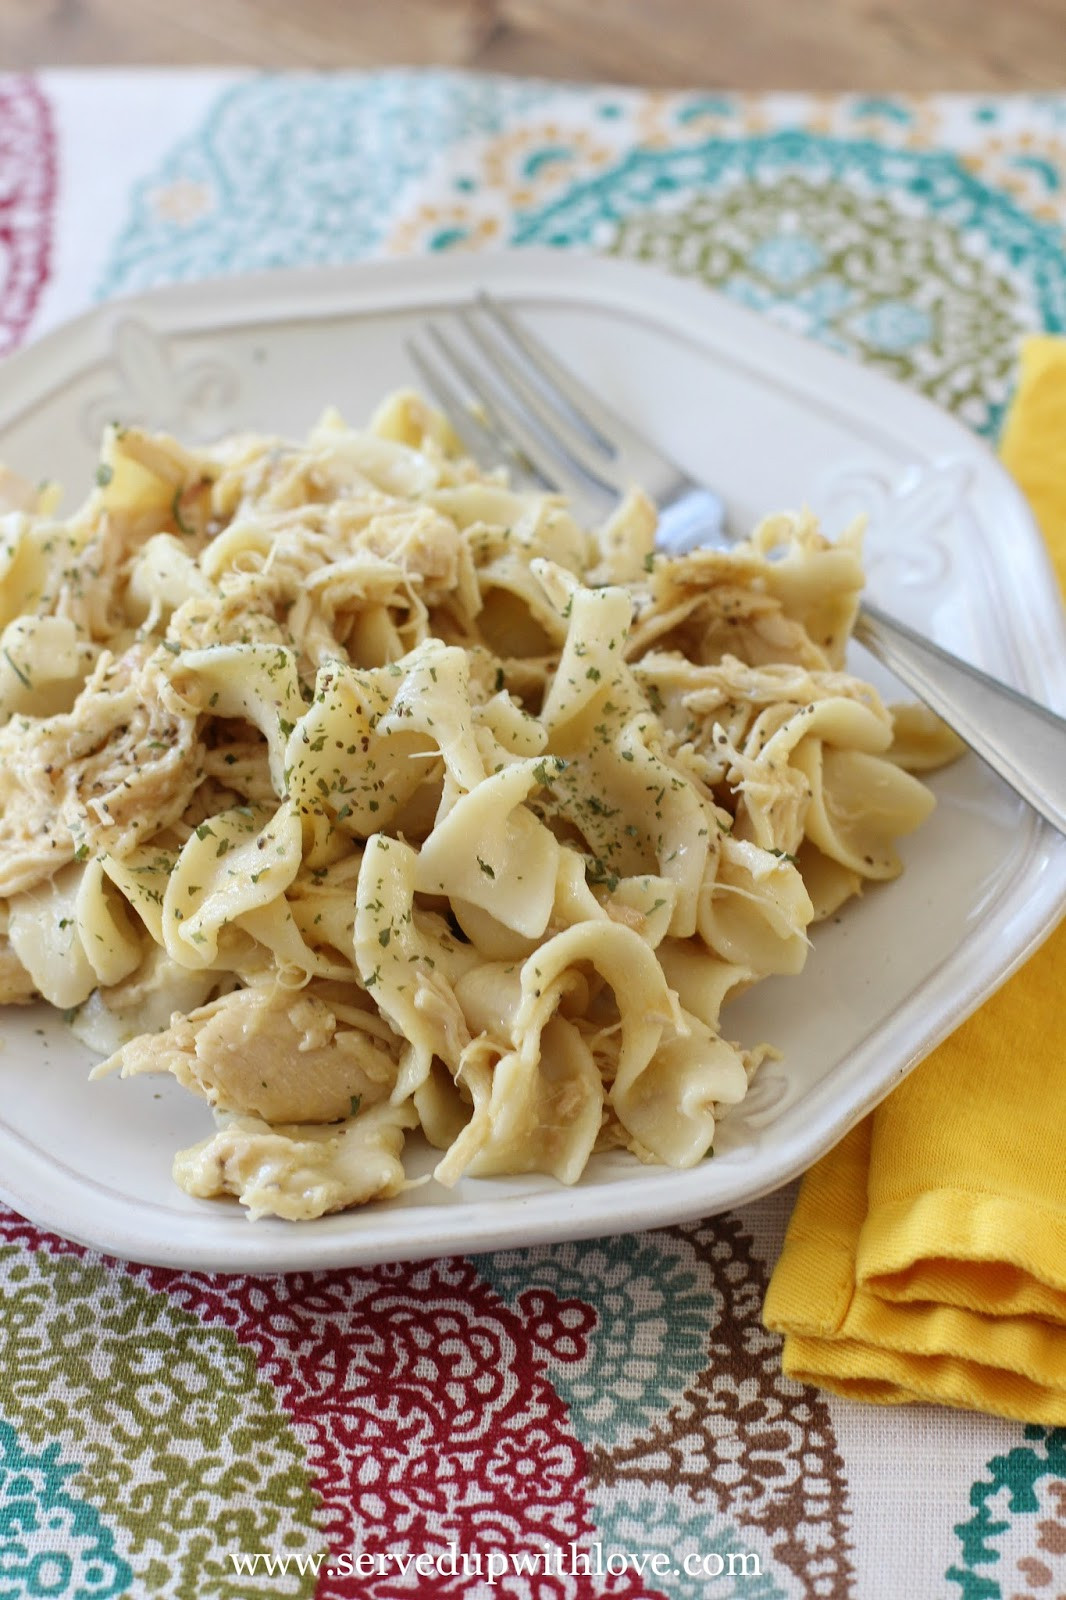 Chicken And Noodles Crock Pot  Served Up With Love Crock Pot Chicken and Noodles